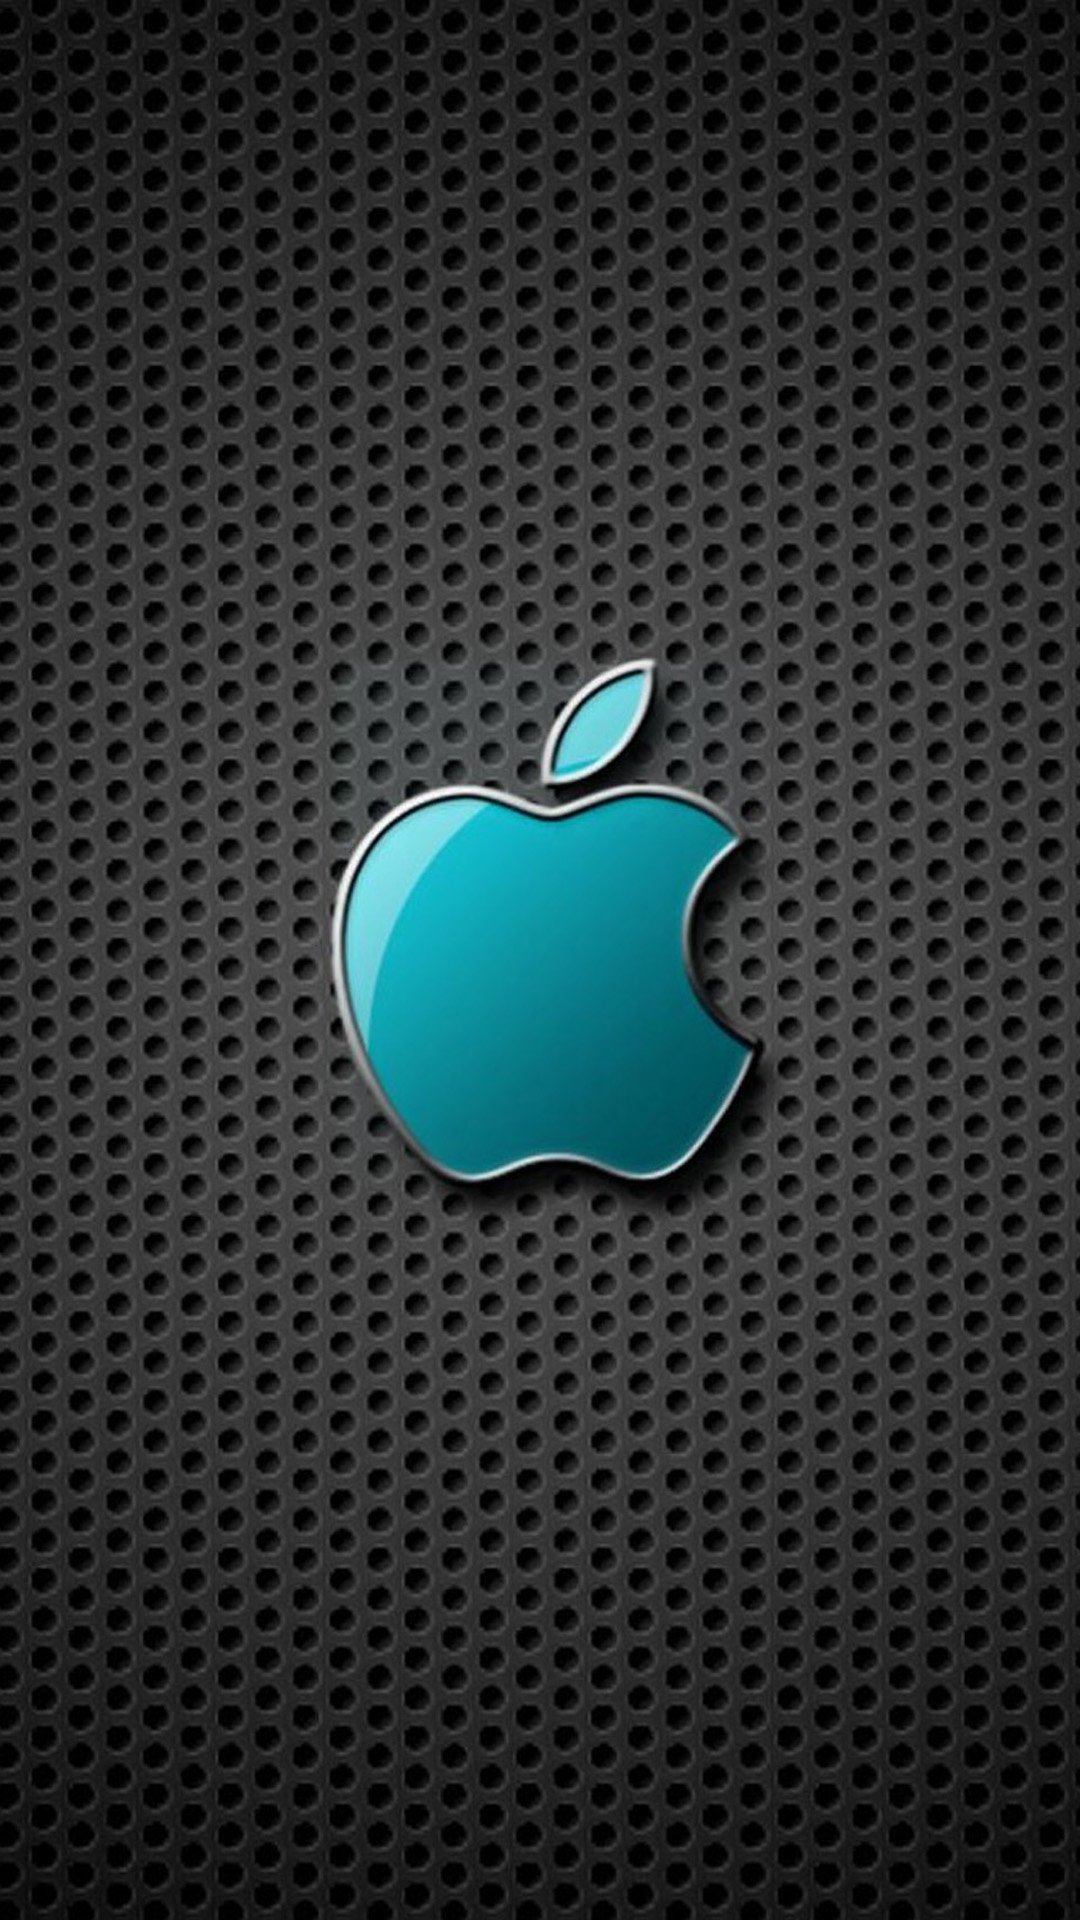 Apple-For-iPhone-Plus-wallpaper-wp3402549